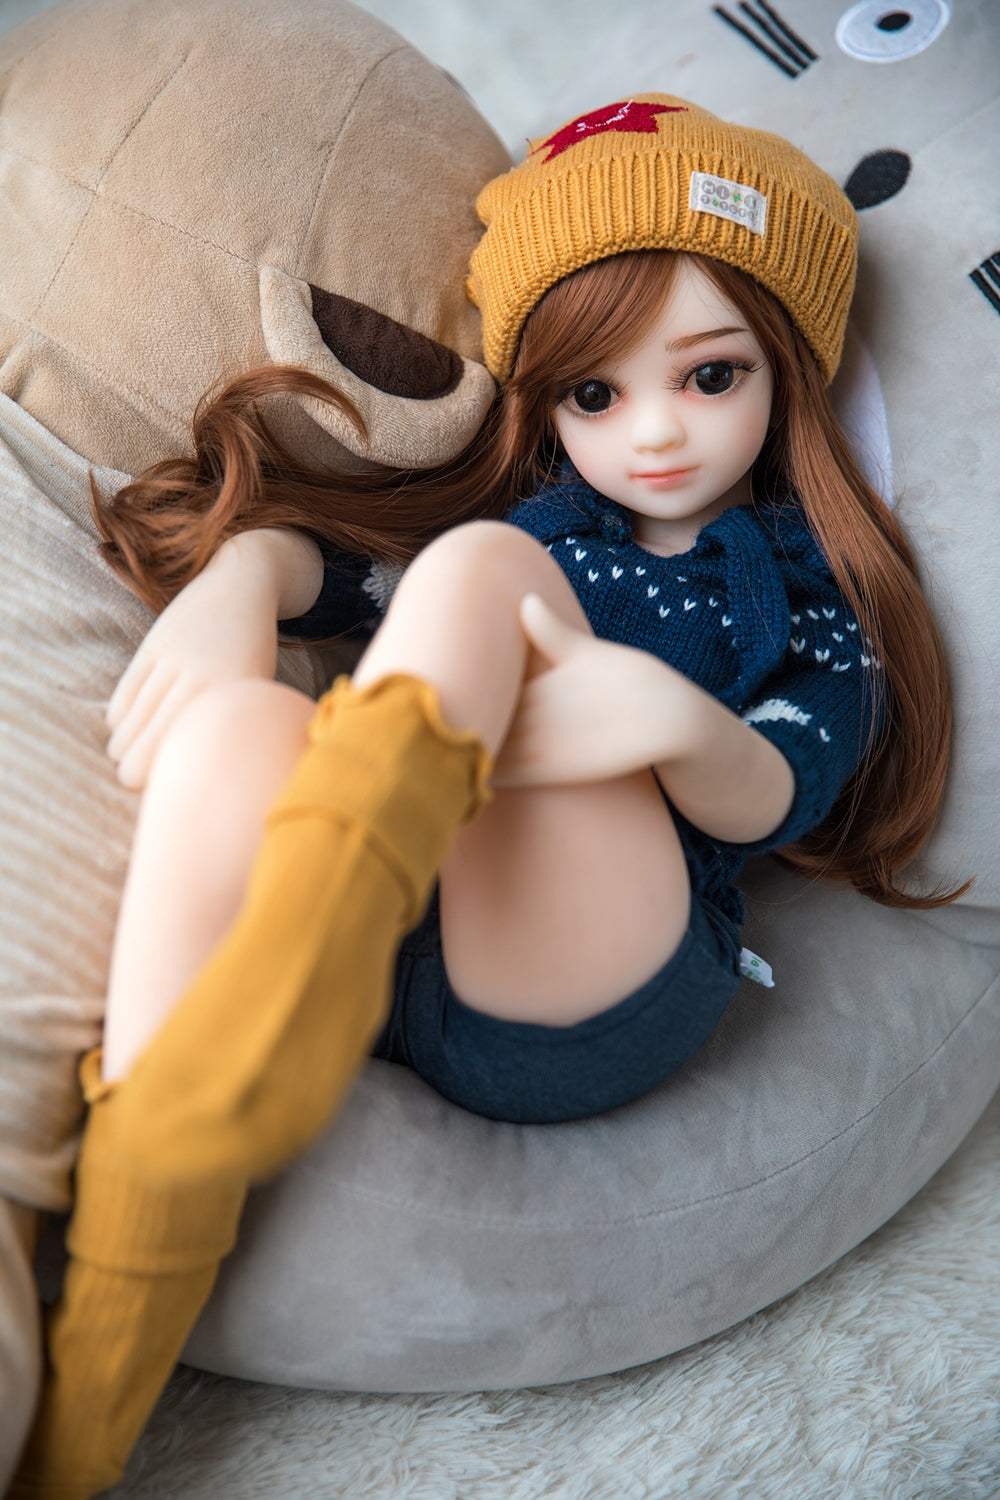 flat chested silicone doll online